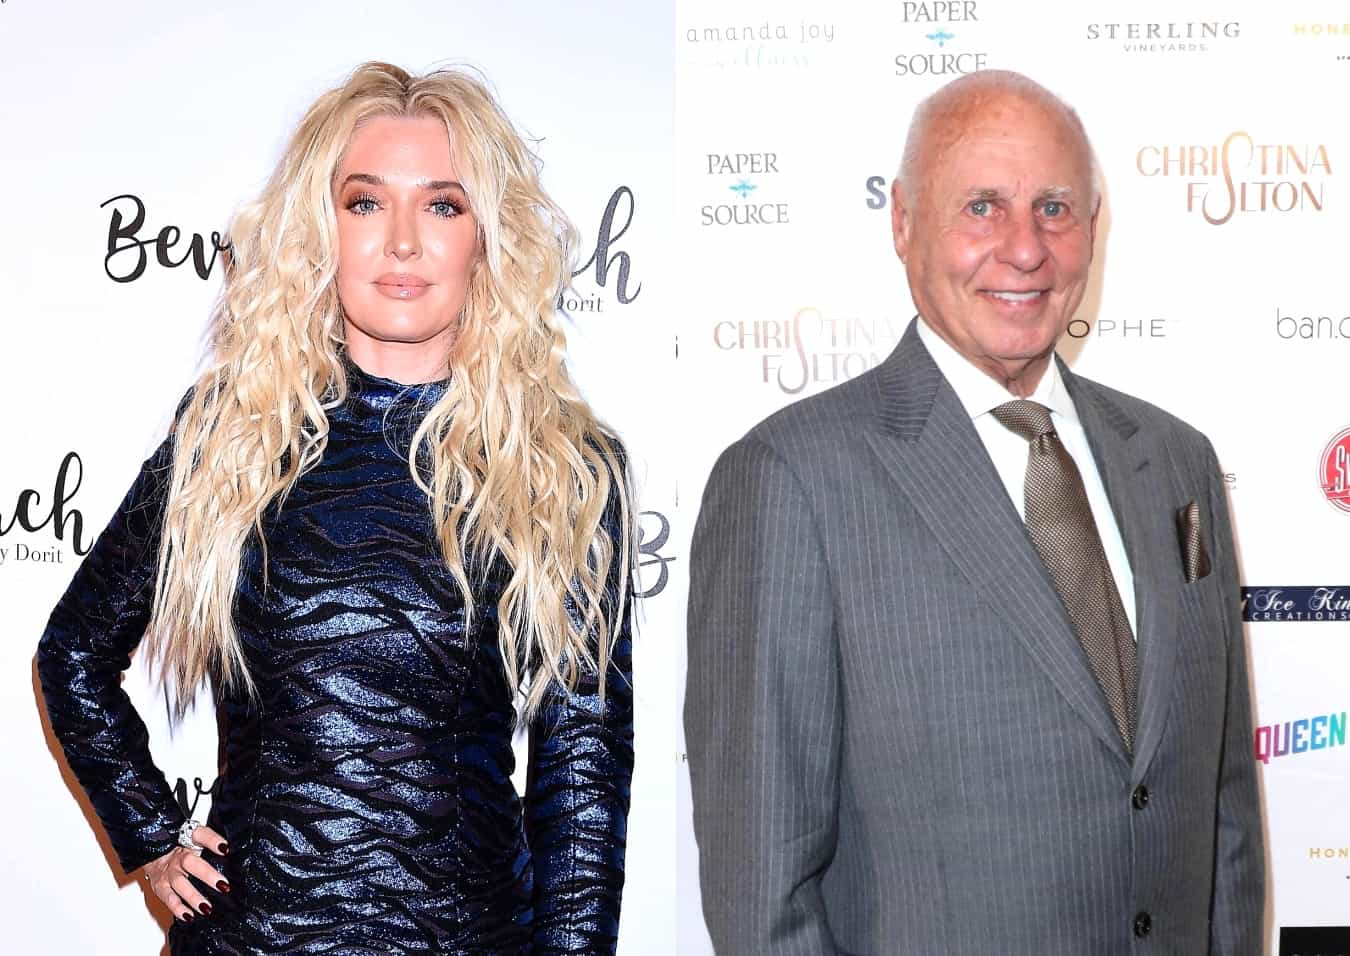 Erika Jayne Sued for Allegedly Hiding Money with Sham Divorce